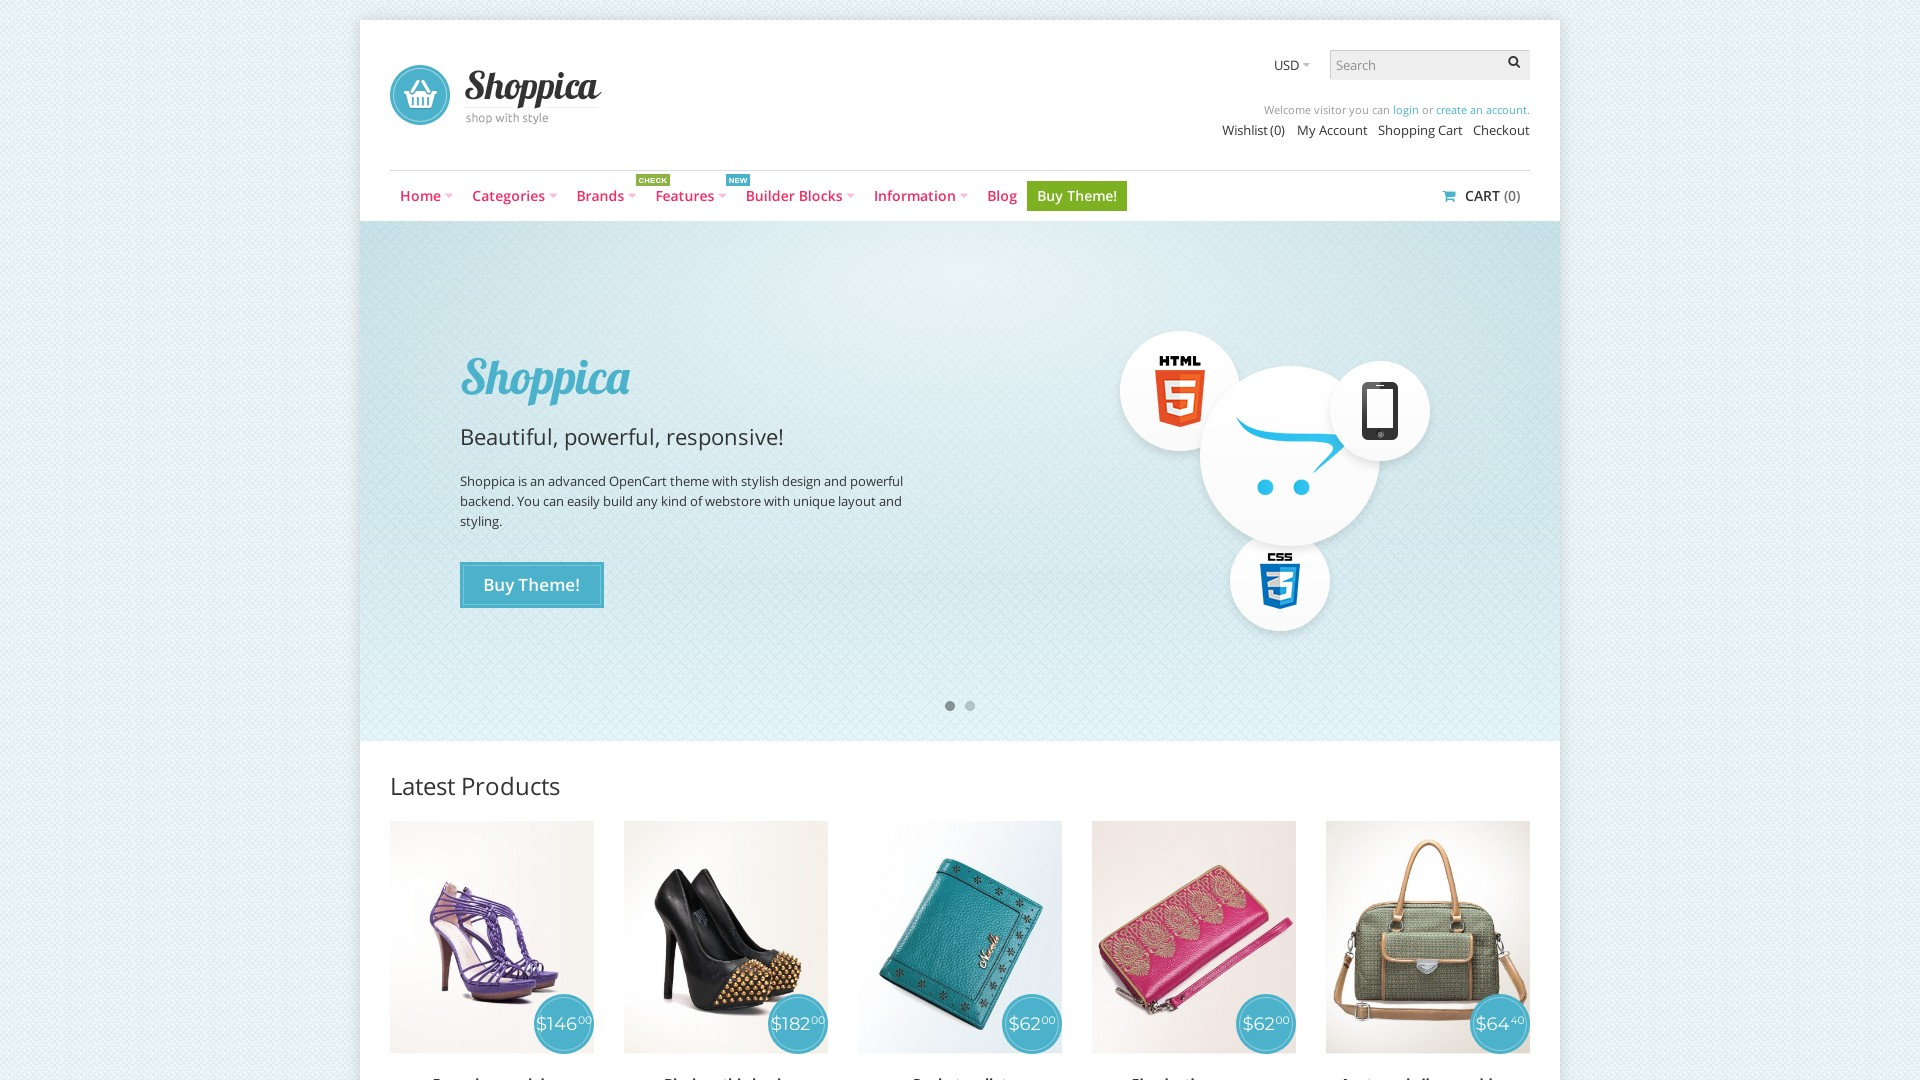 Shoppica Reviews  Is the OpenCart Ecommerce Platform a Scam?